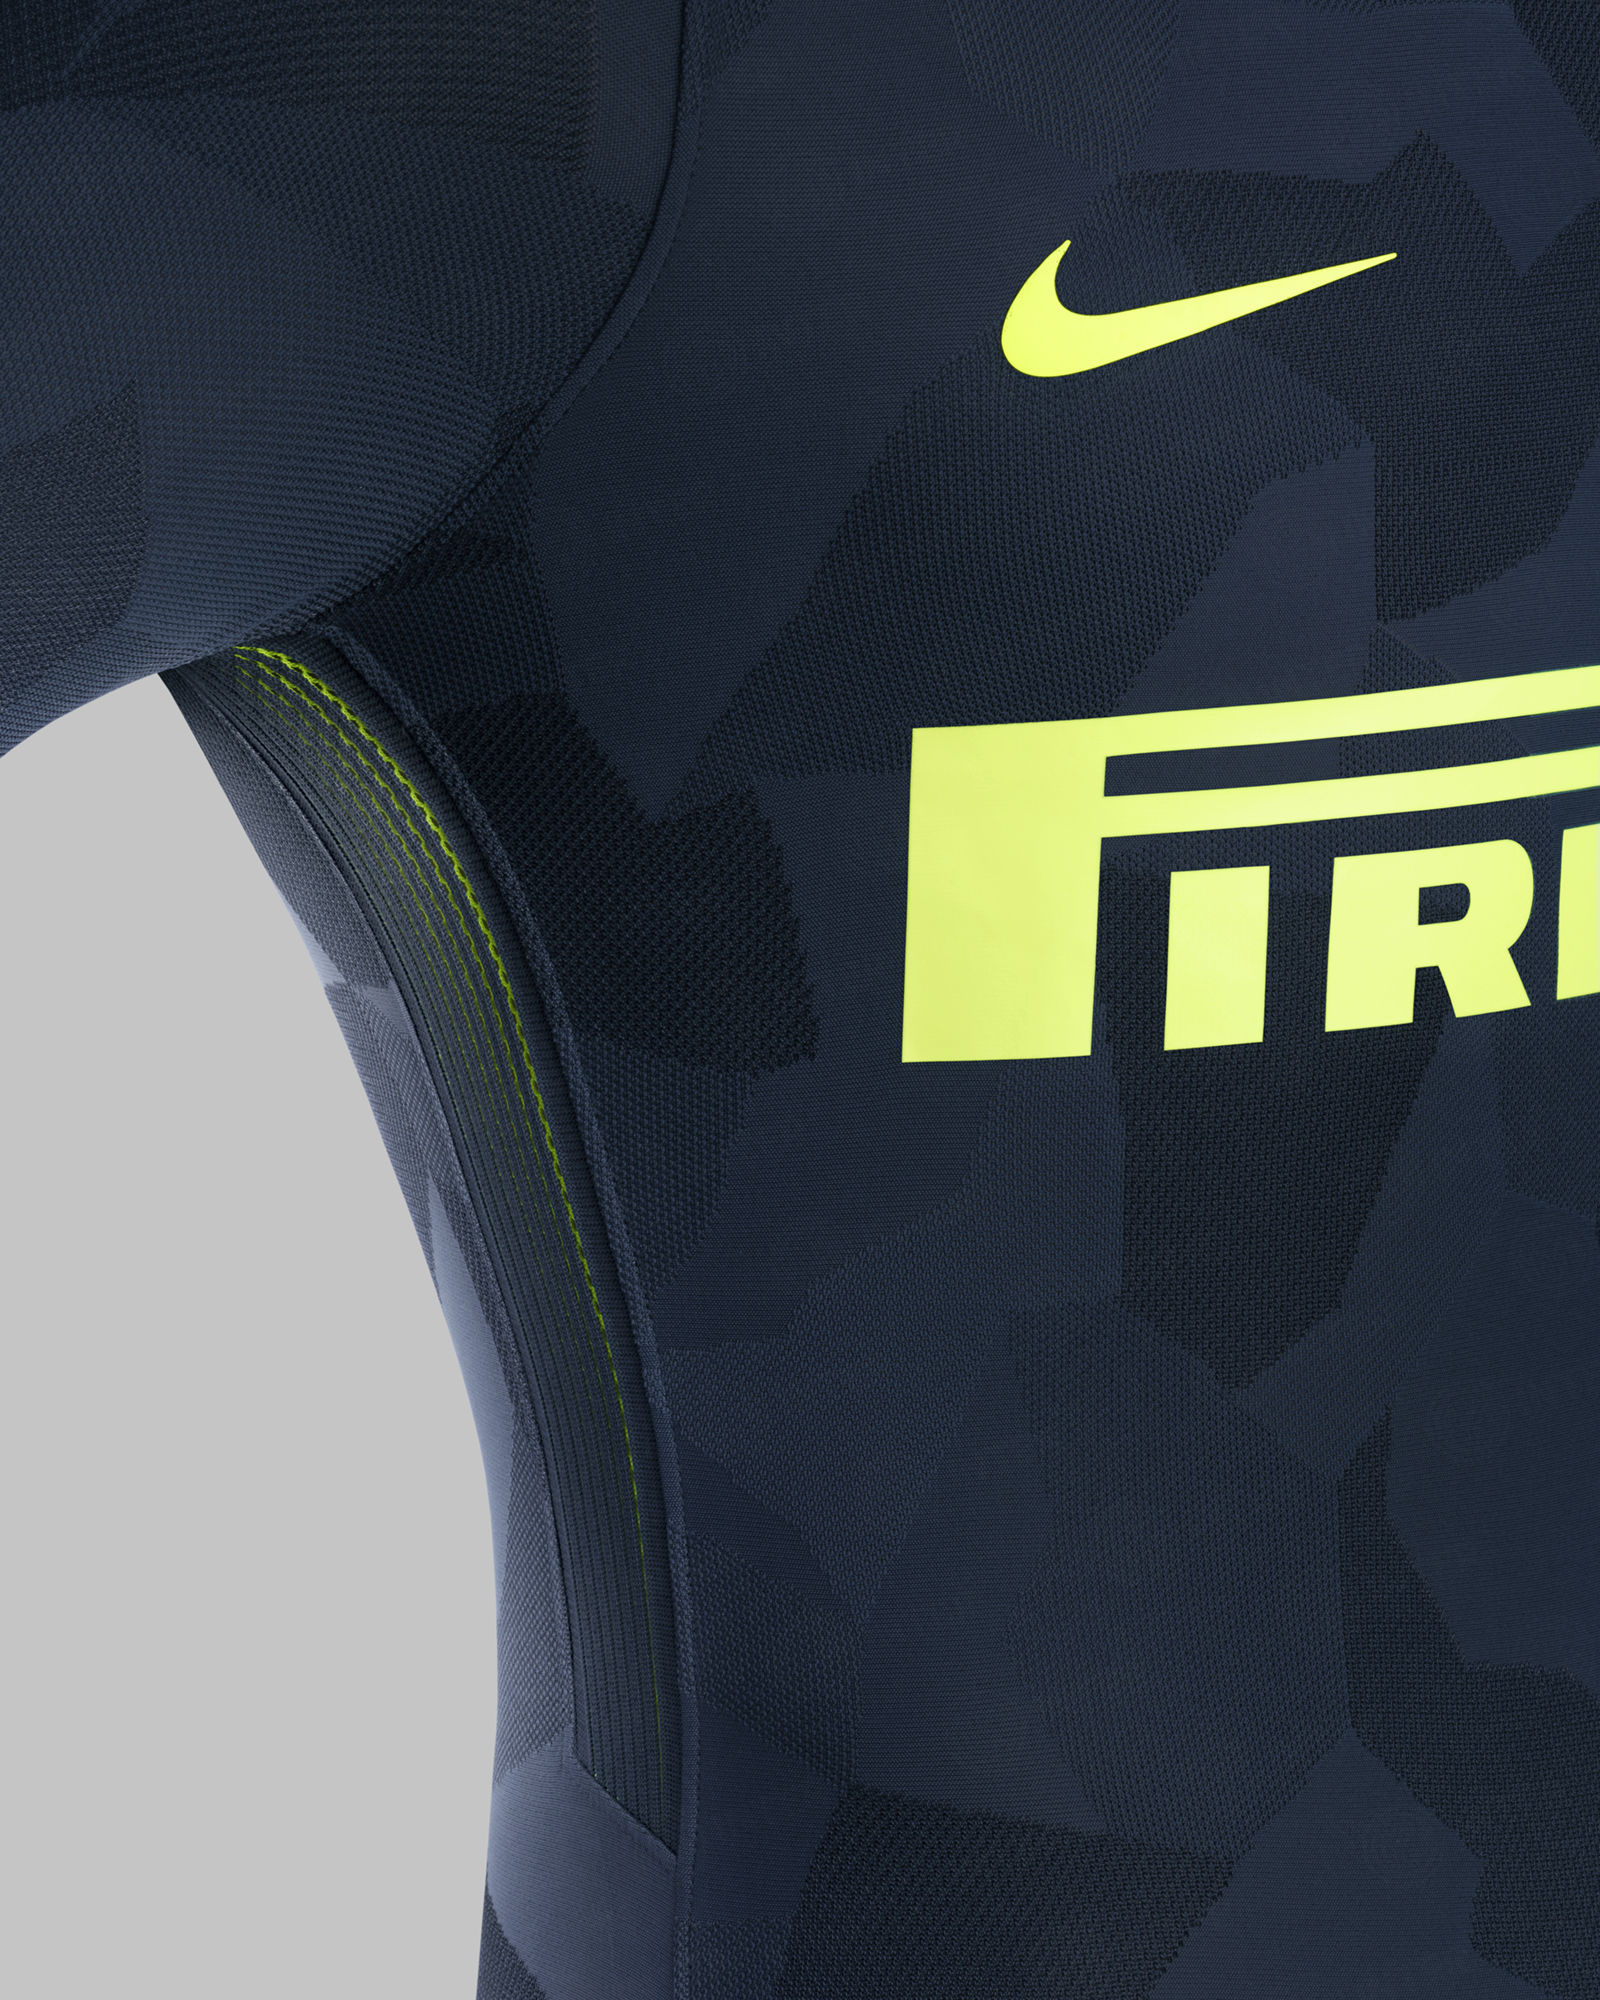 New Inter third kit